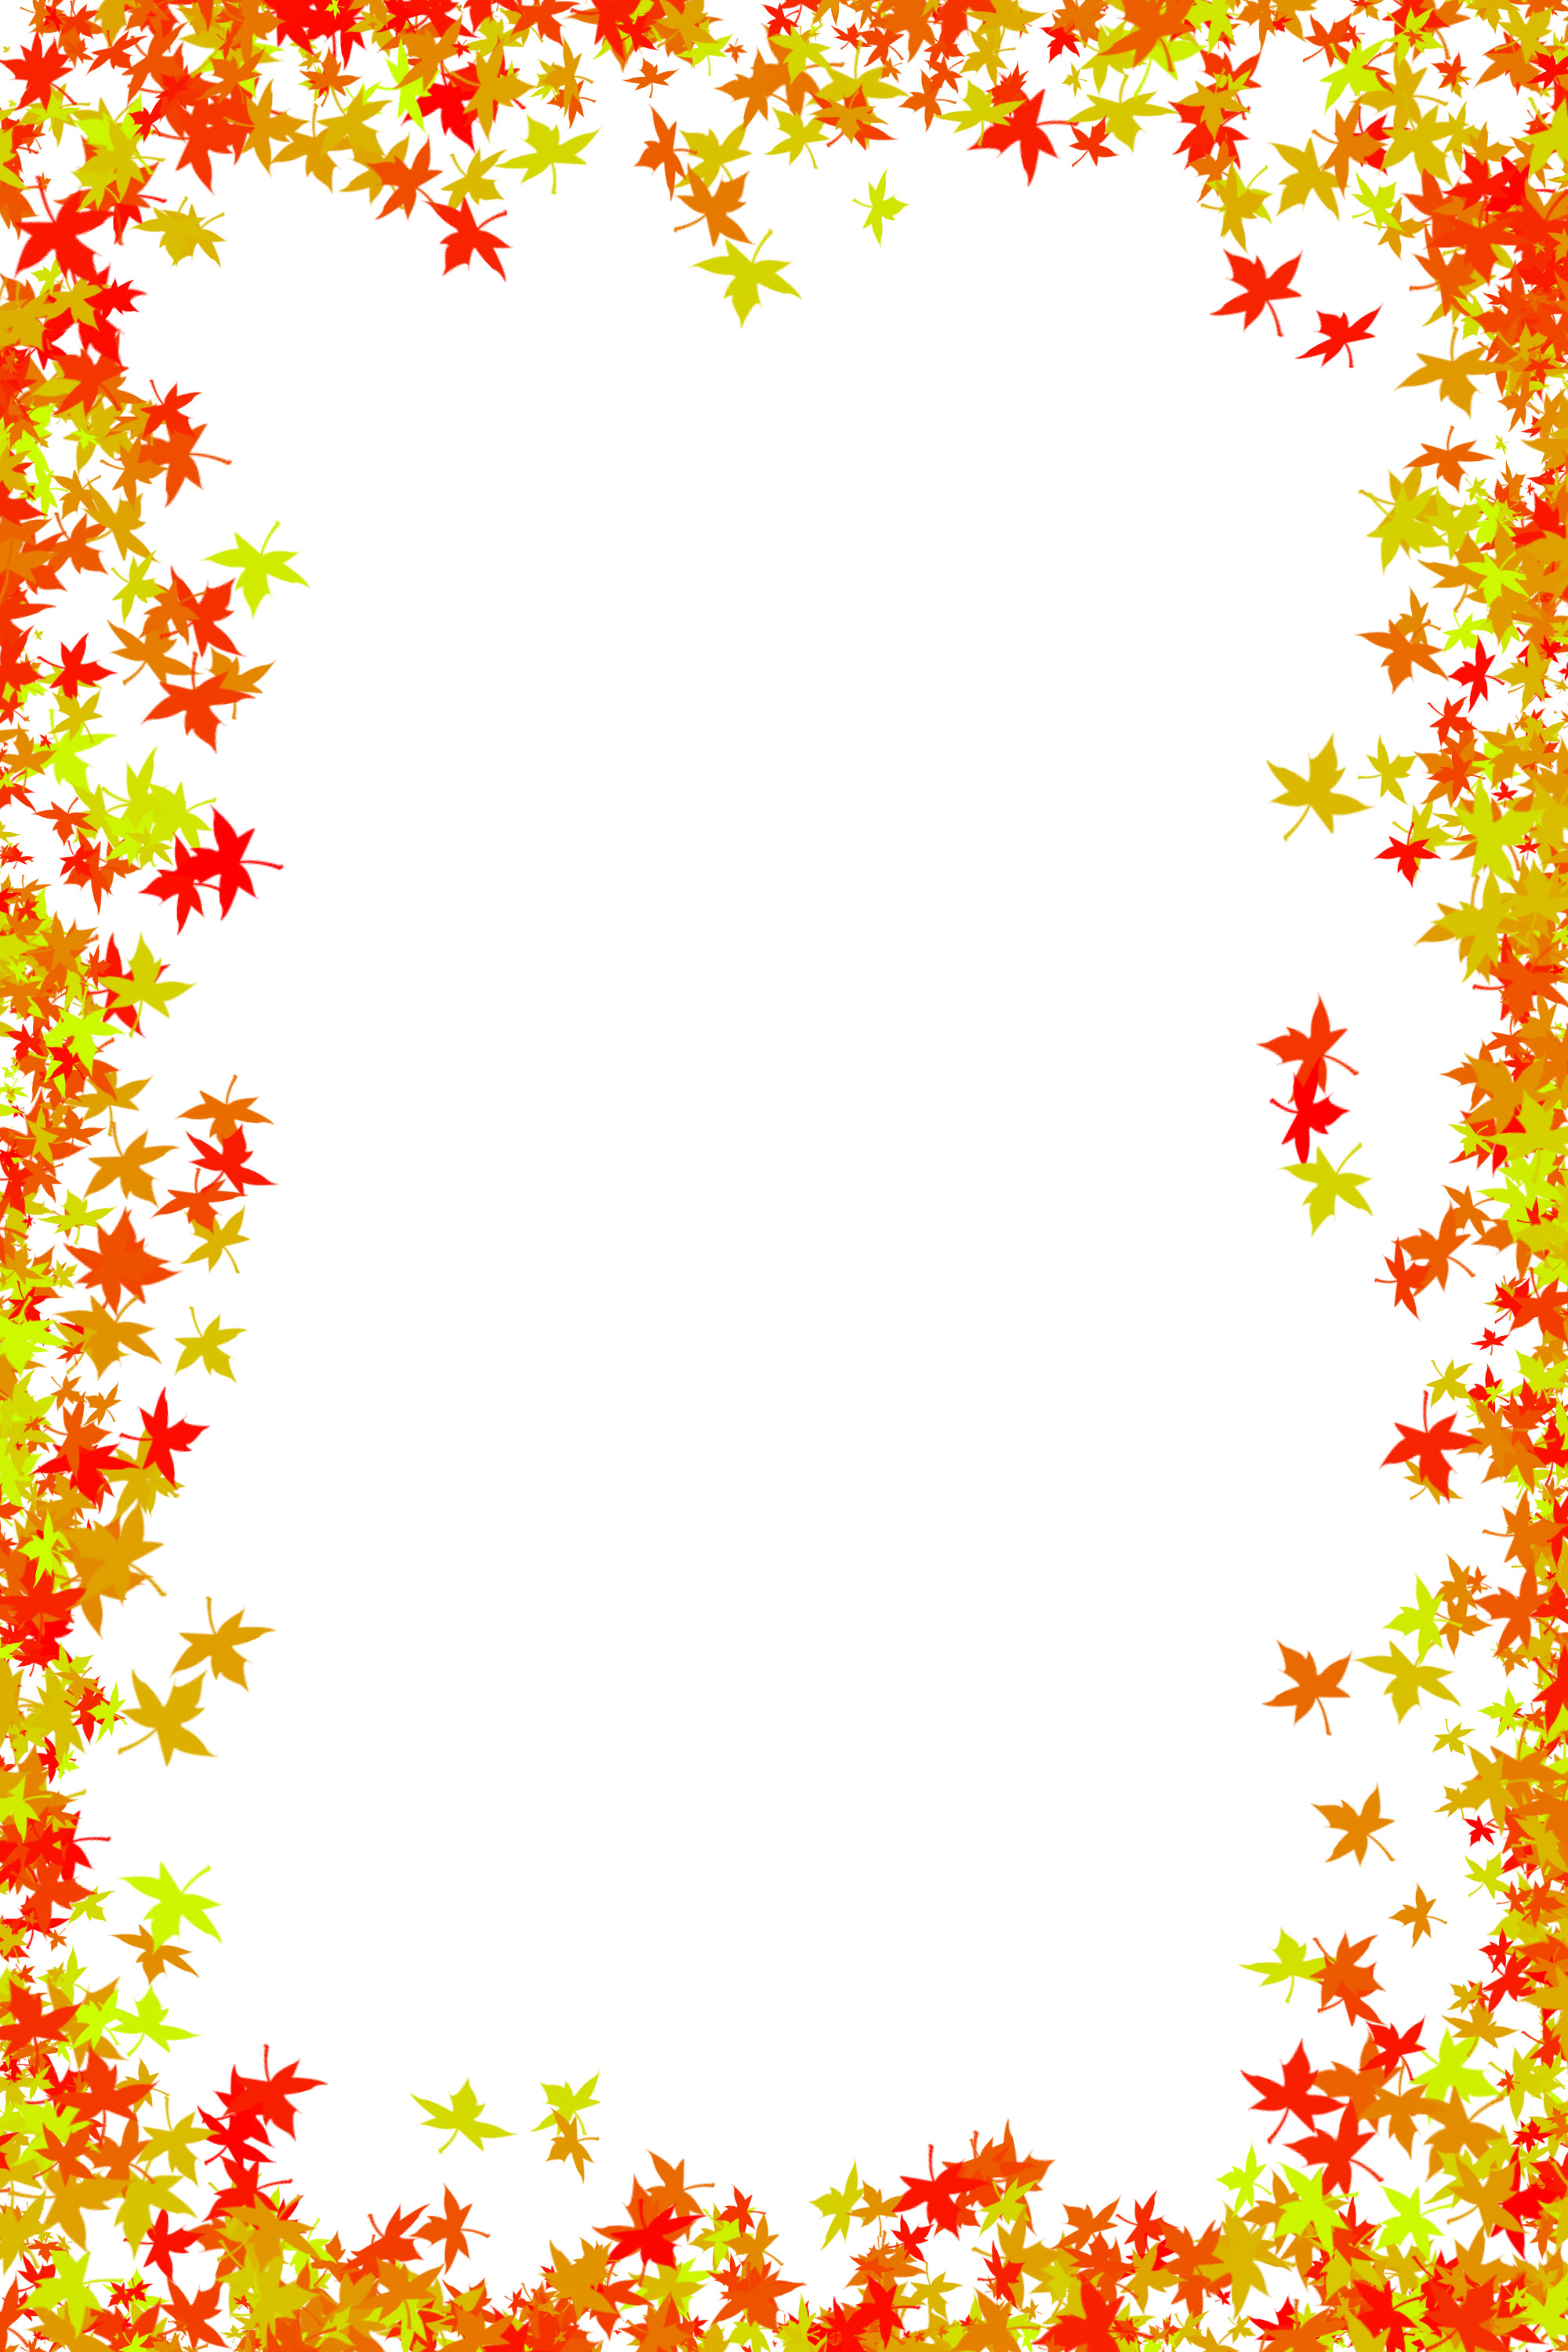 keywords maple leaf autumn colours leaves frame border edges edgeing